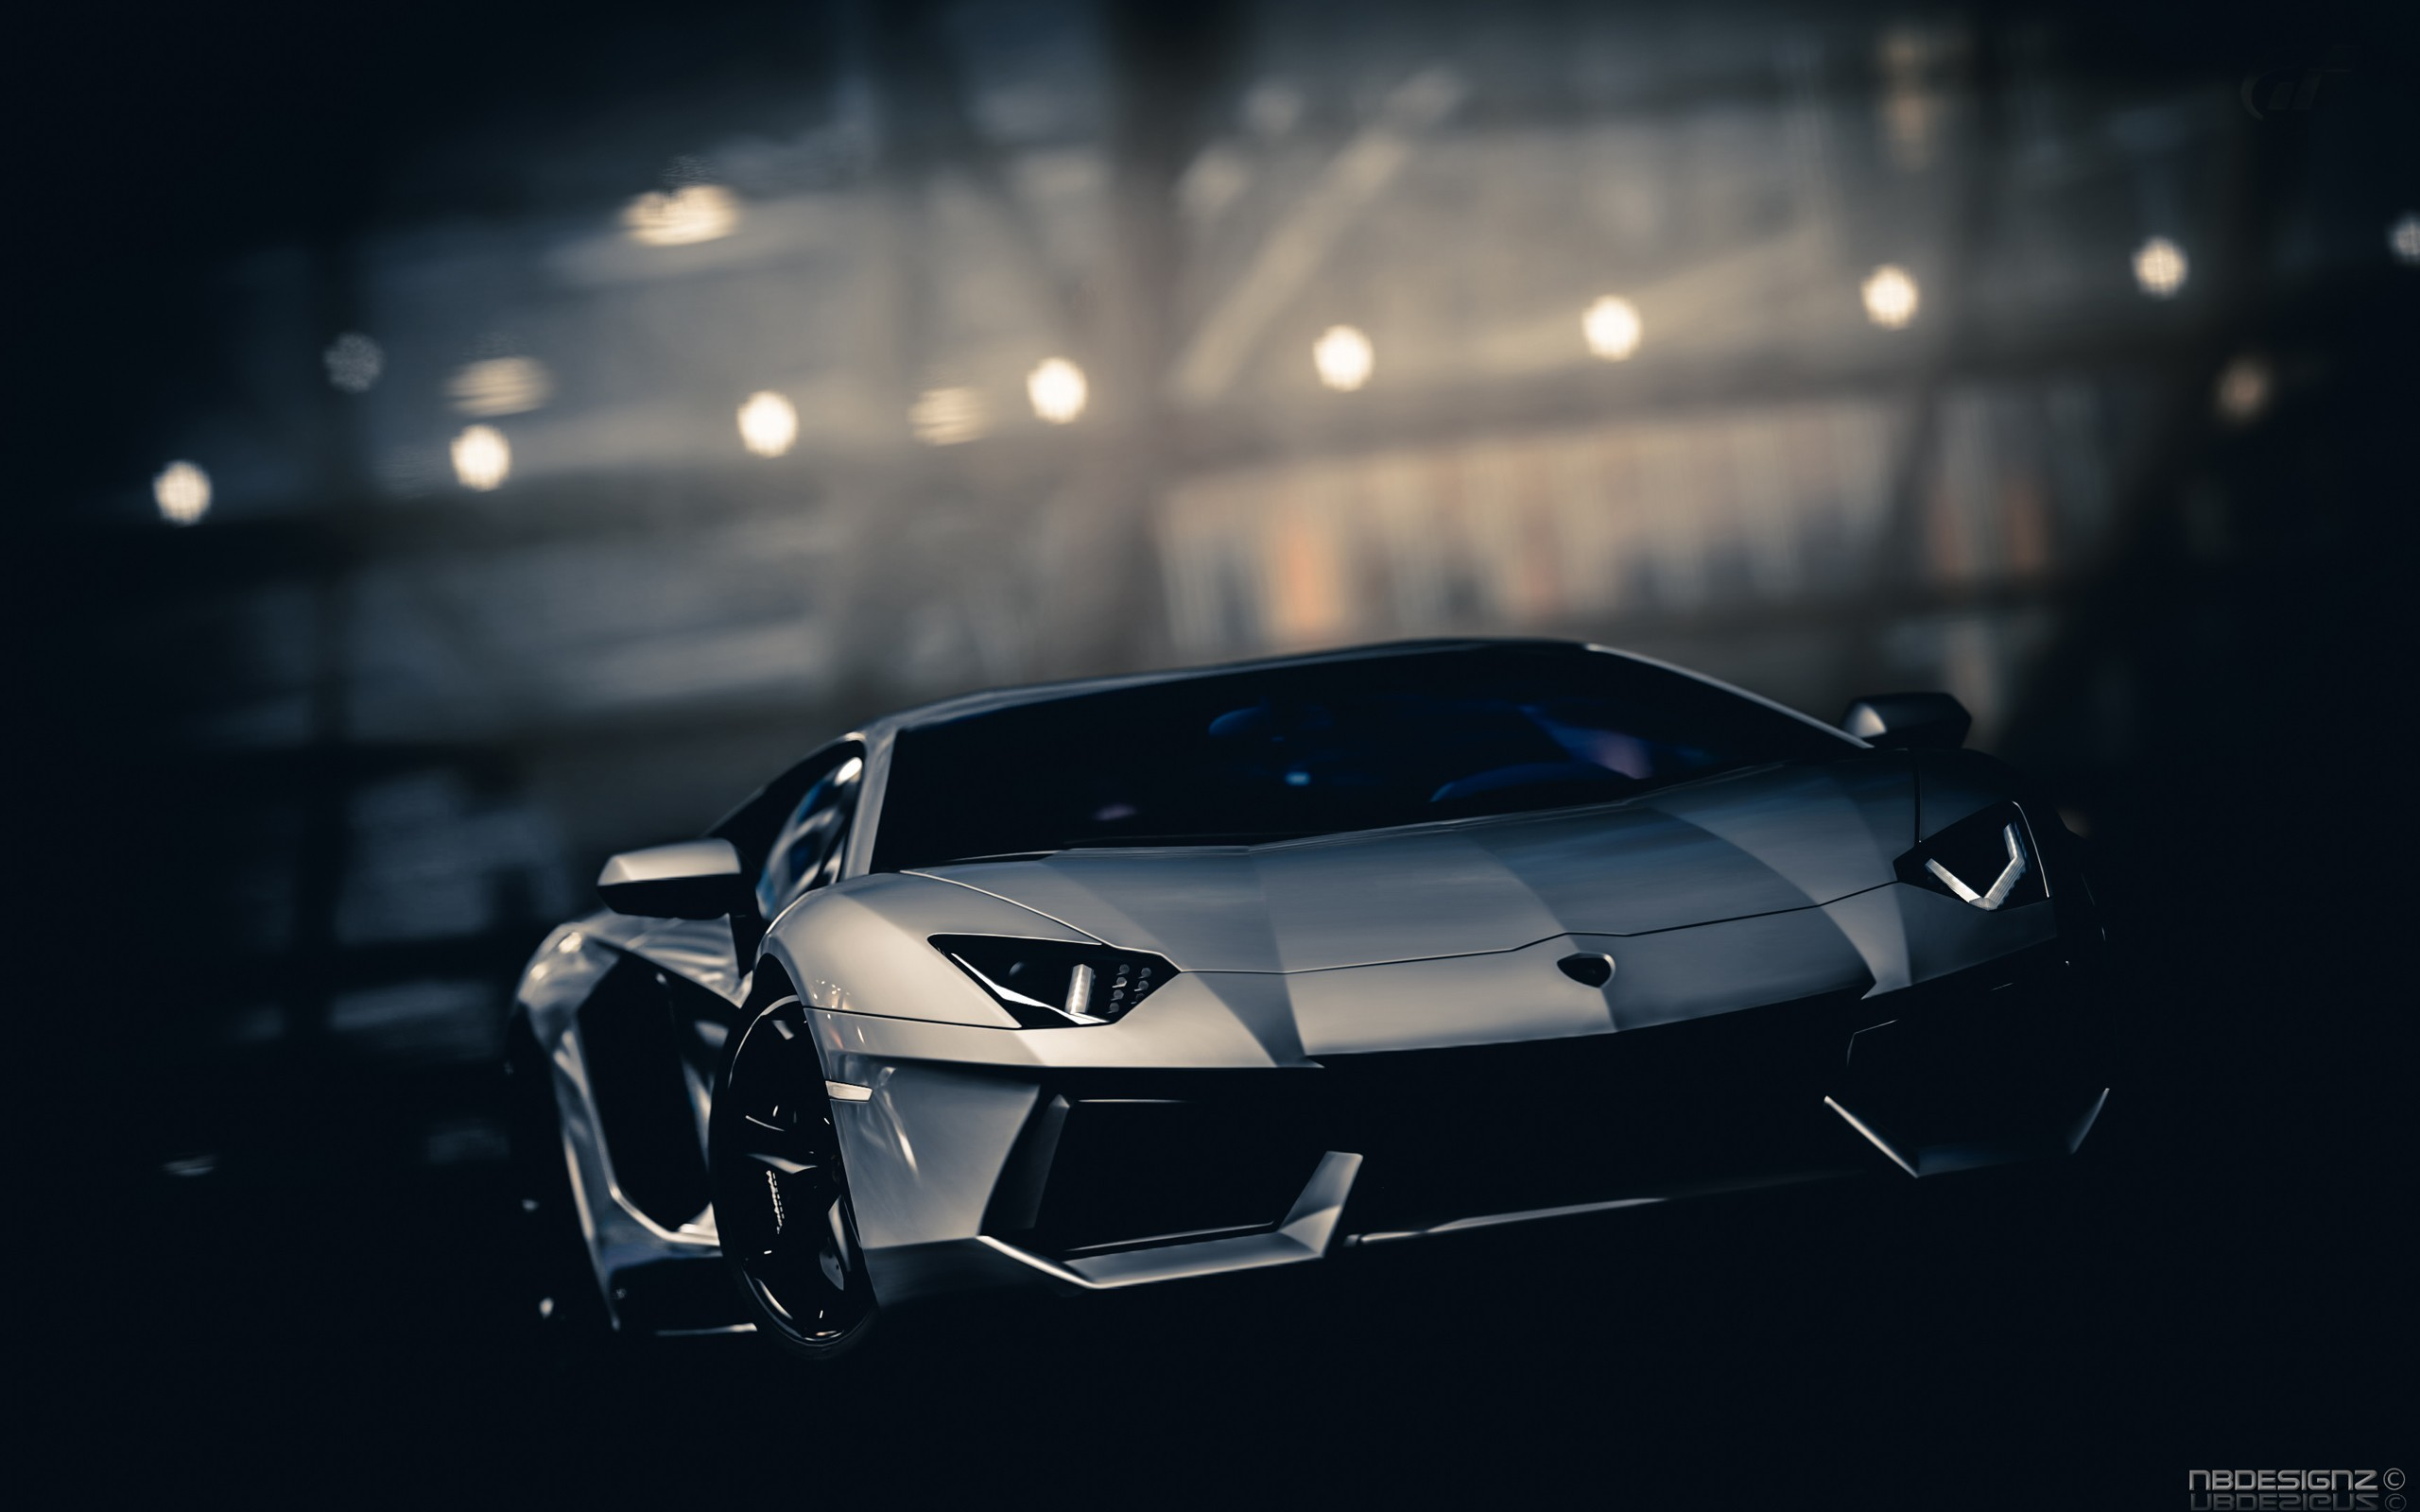 2560x1600 Cars-Wallpaper-Full-HD-1920x1080-Free-Download-Wallpaperxyz.